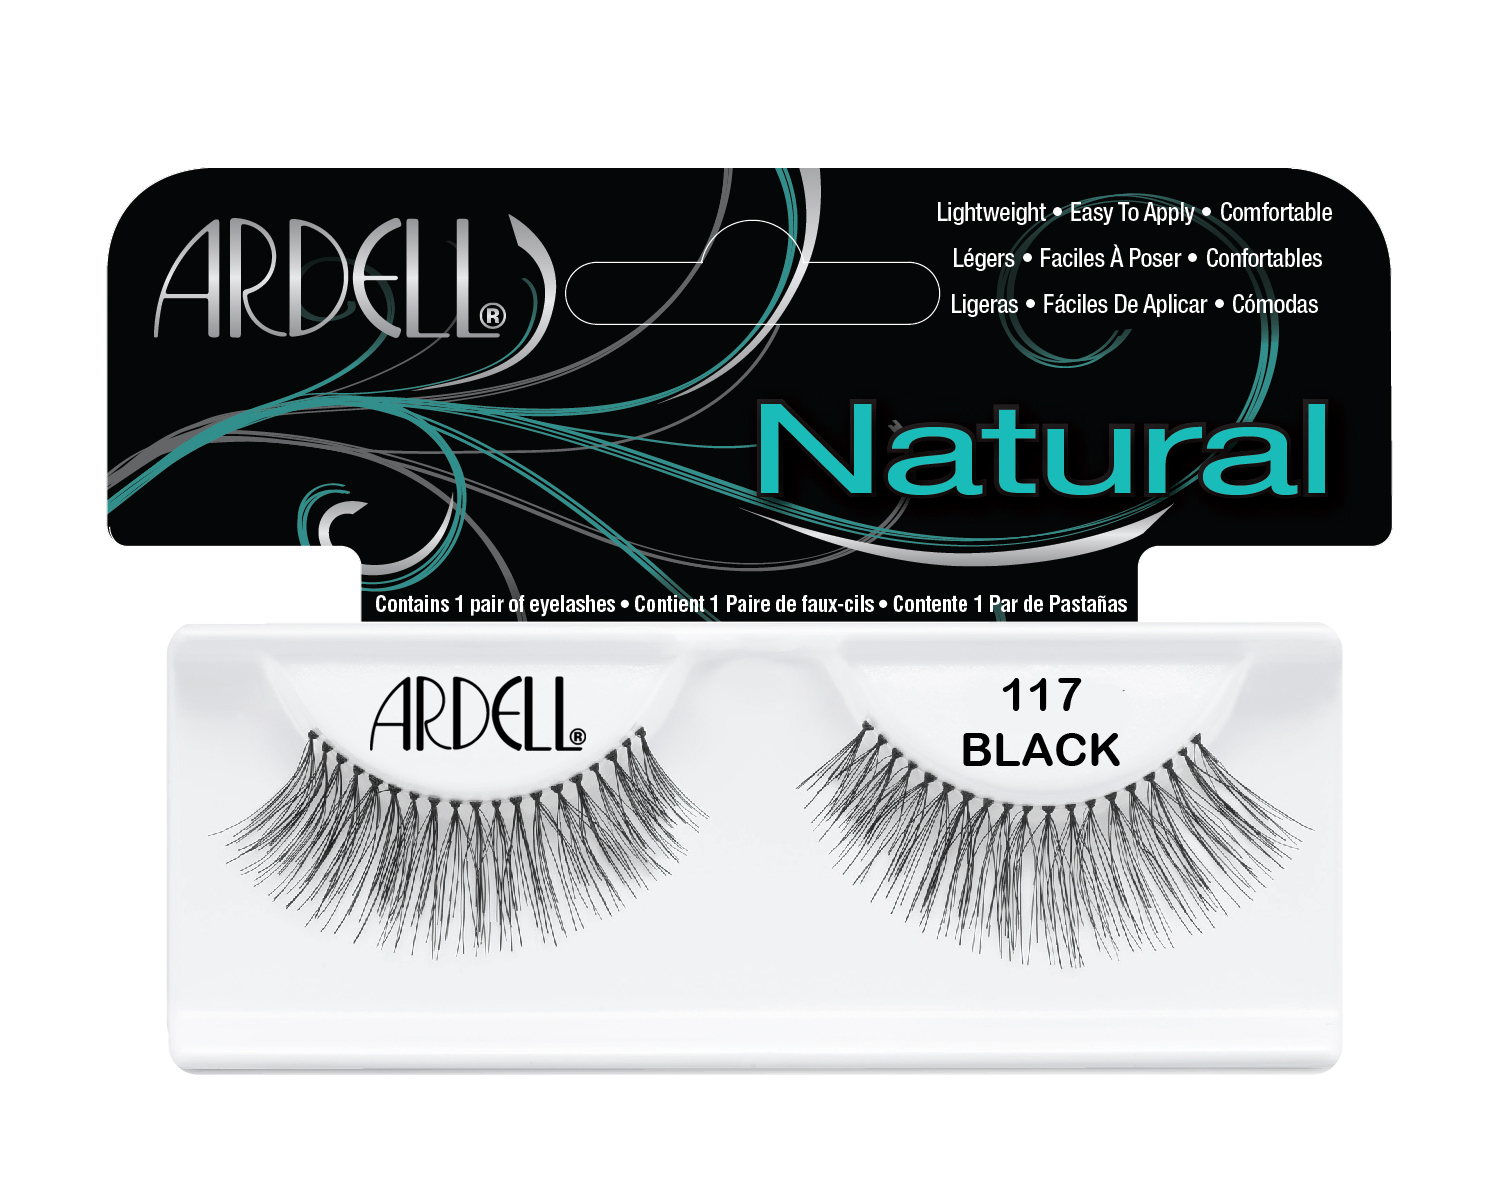 Ardell® 117 Lashes